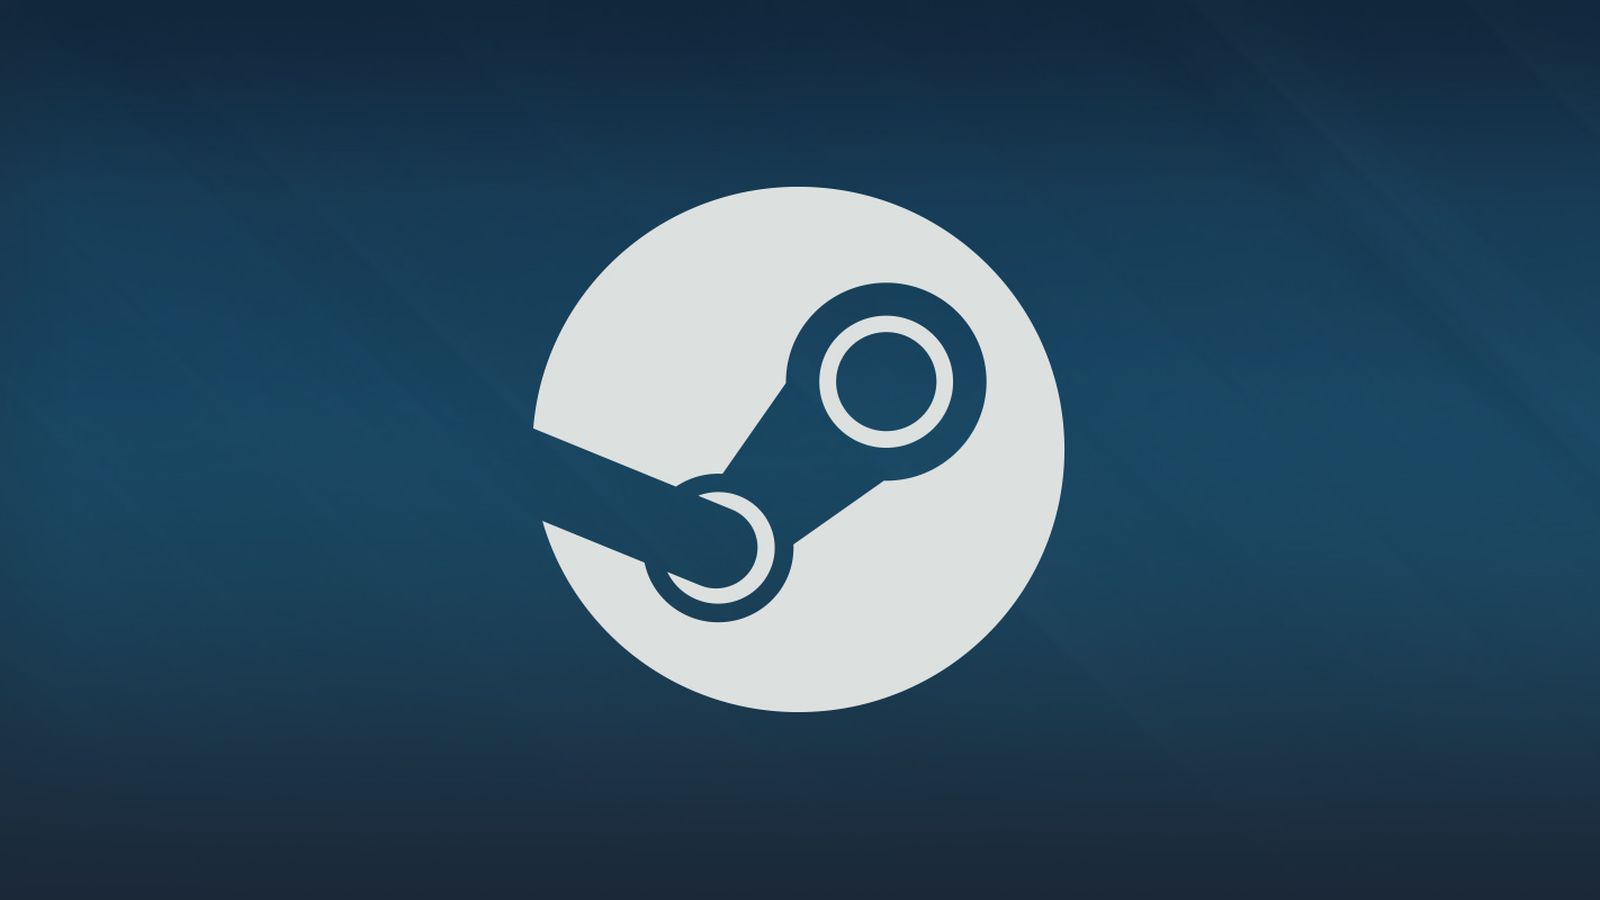 Steam Chat gets its own app on Android, iOS - VG247